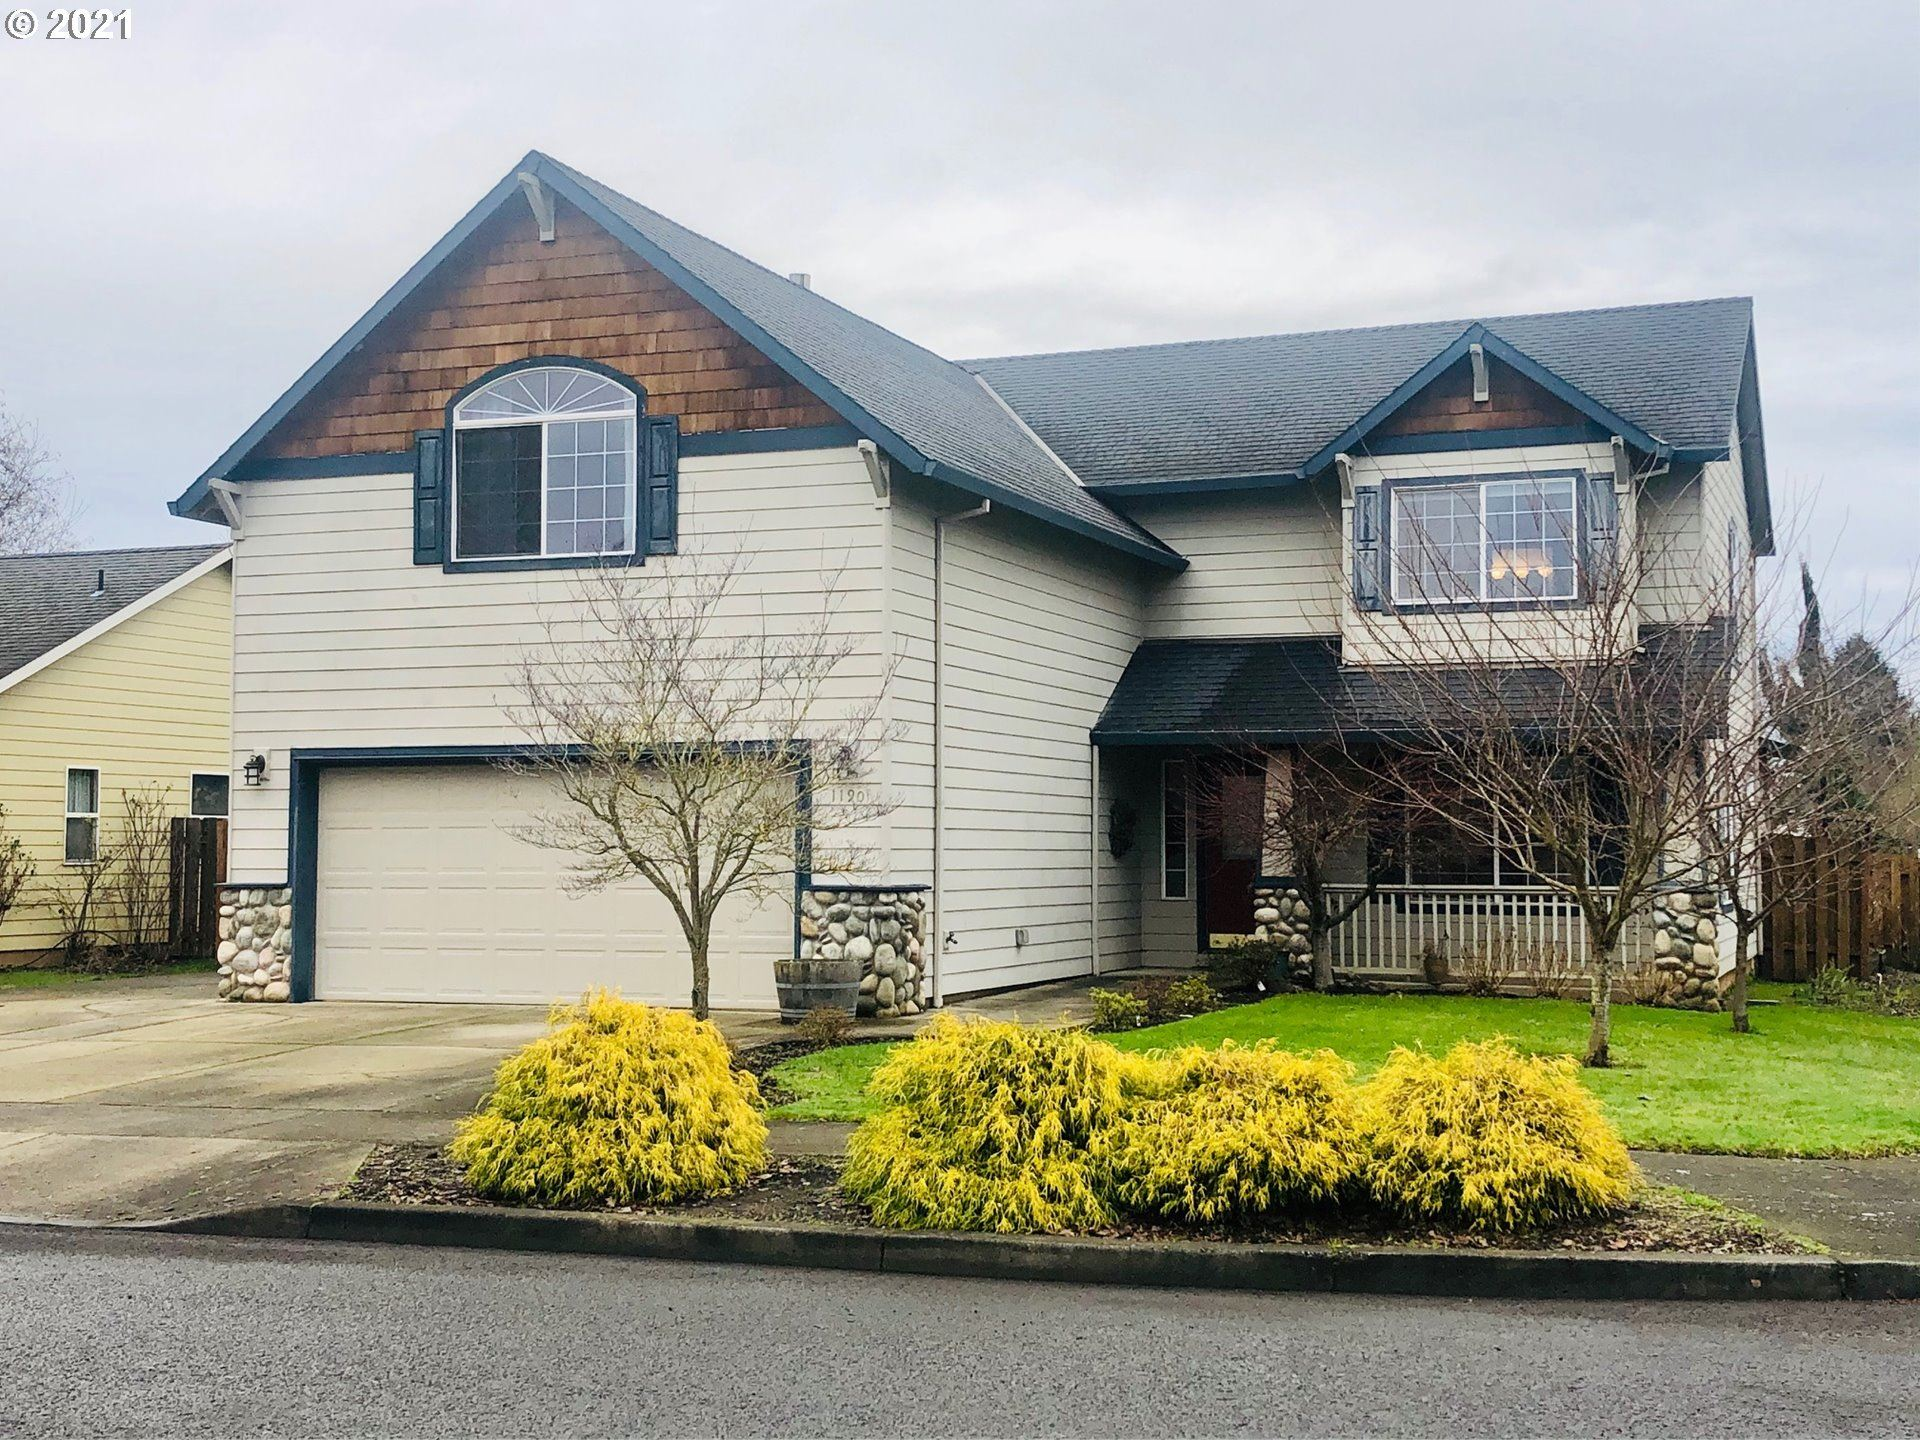 Photo for 1190 S SYCAMORE ST, Canby, OR 97013 (MLS # 20653769)